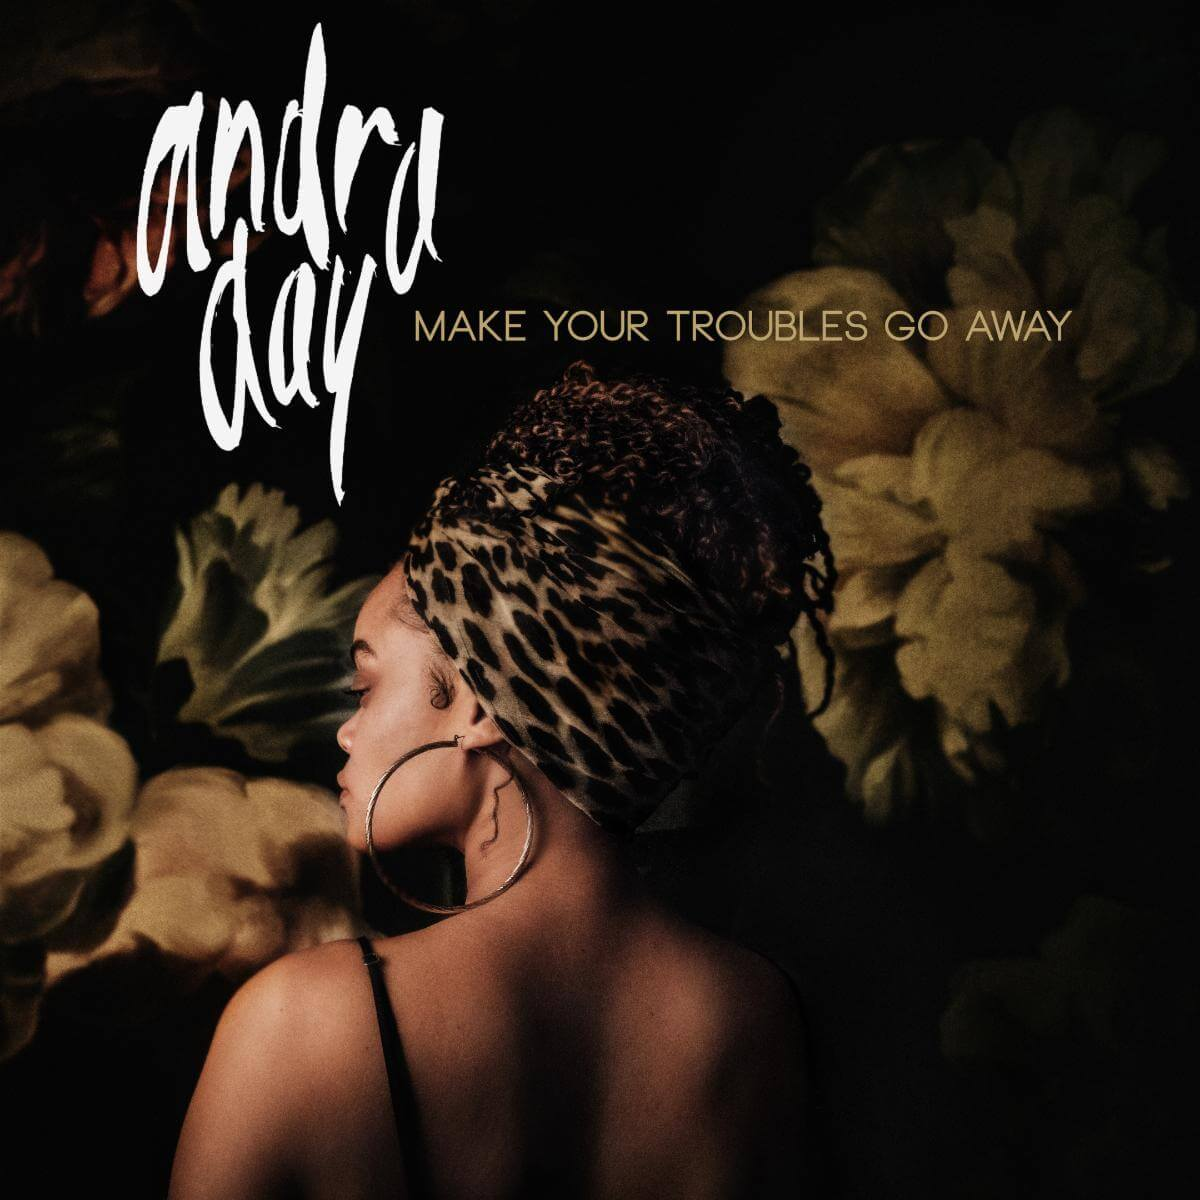 Andra Day Make Your Troubles Go Away